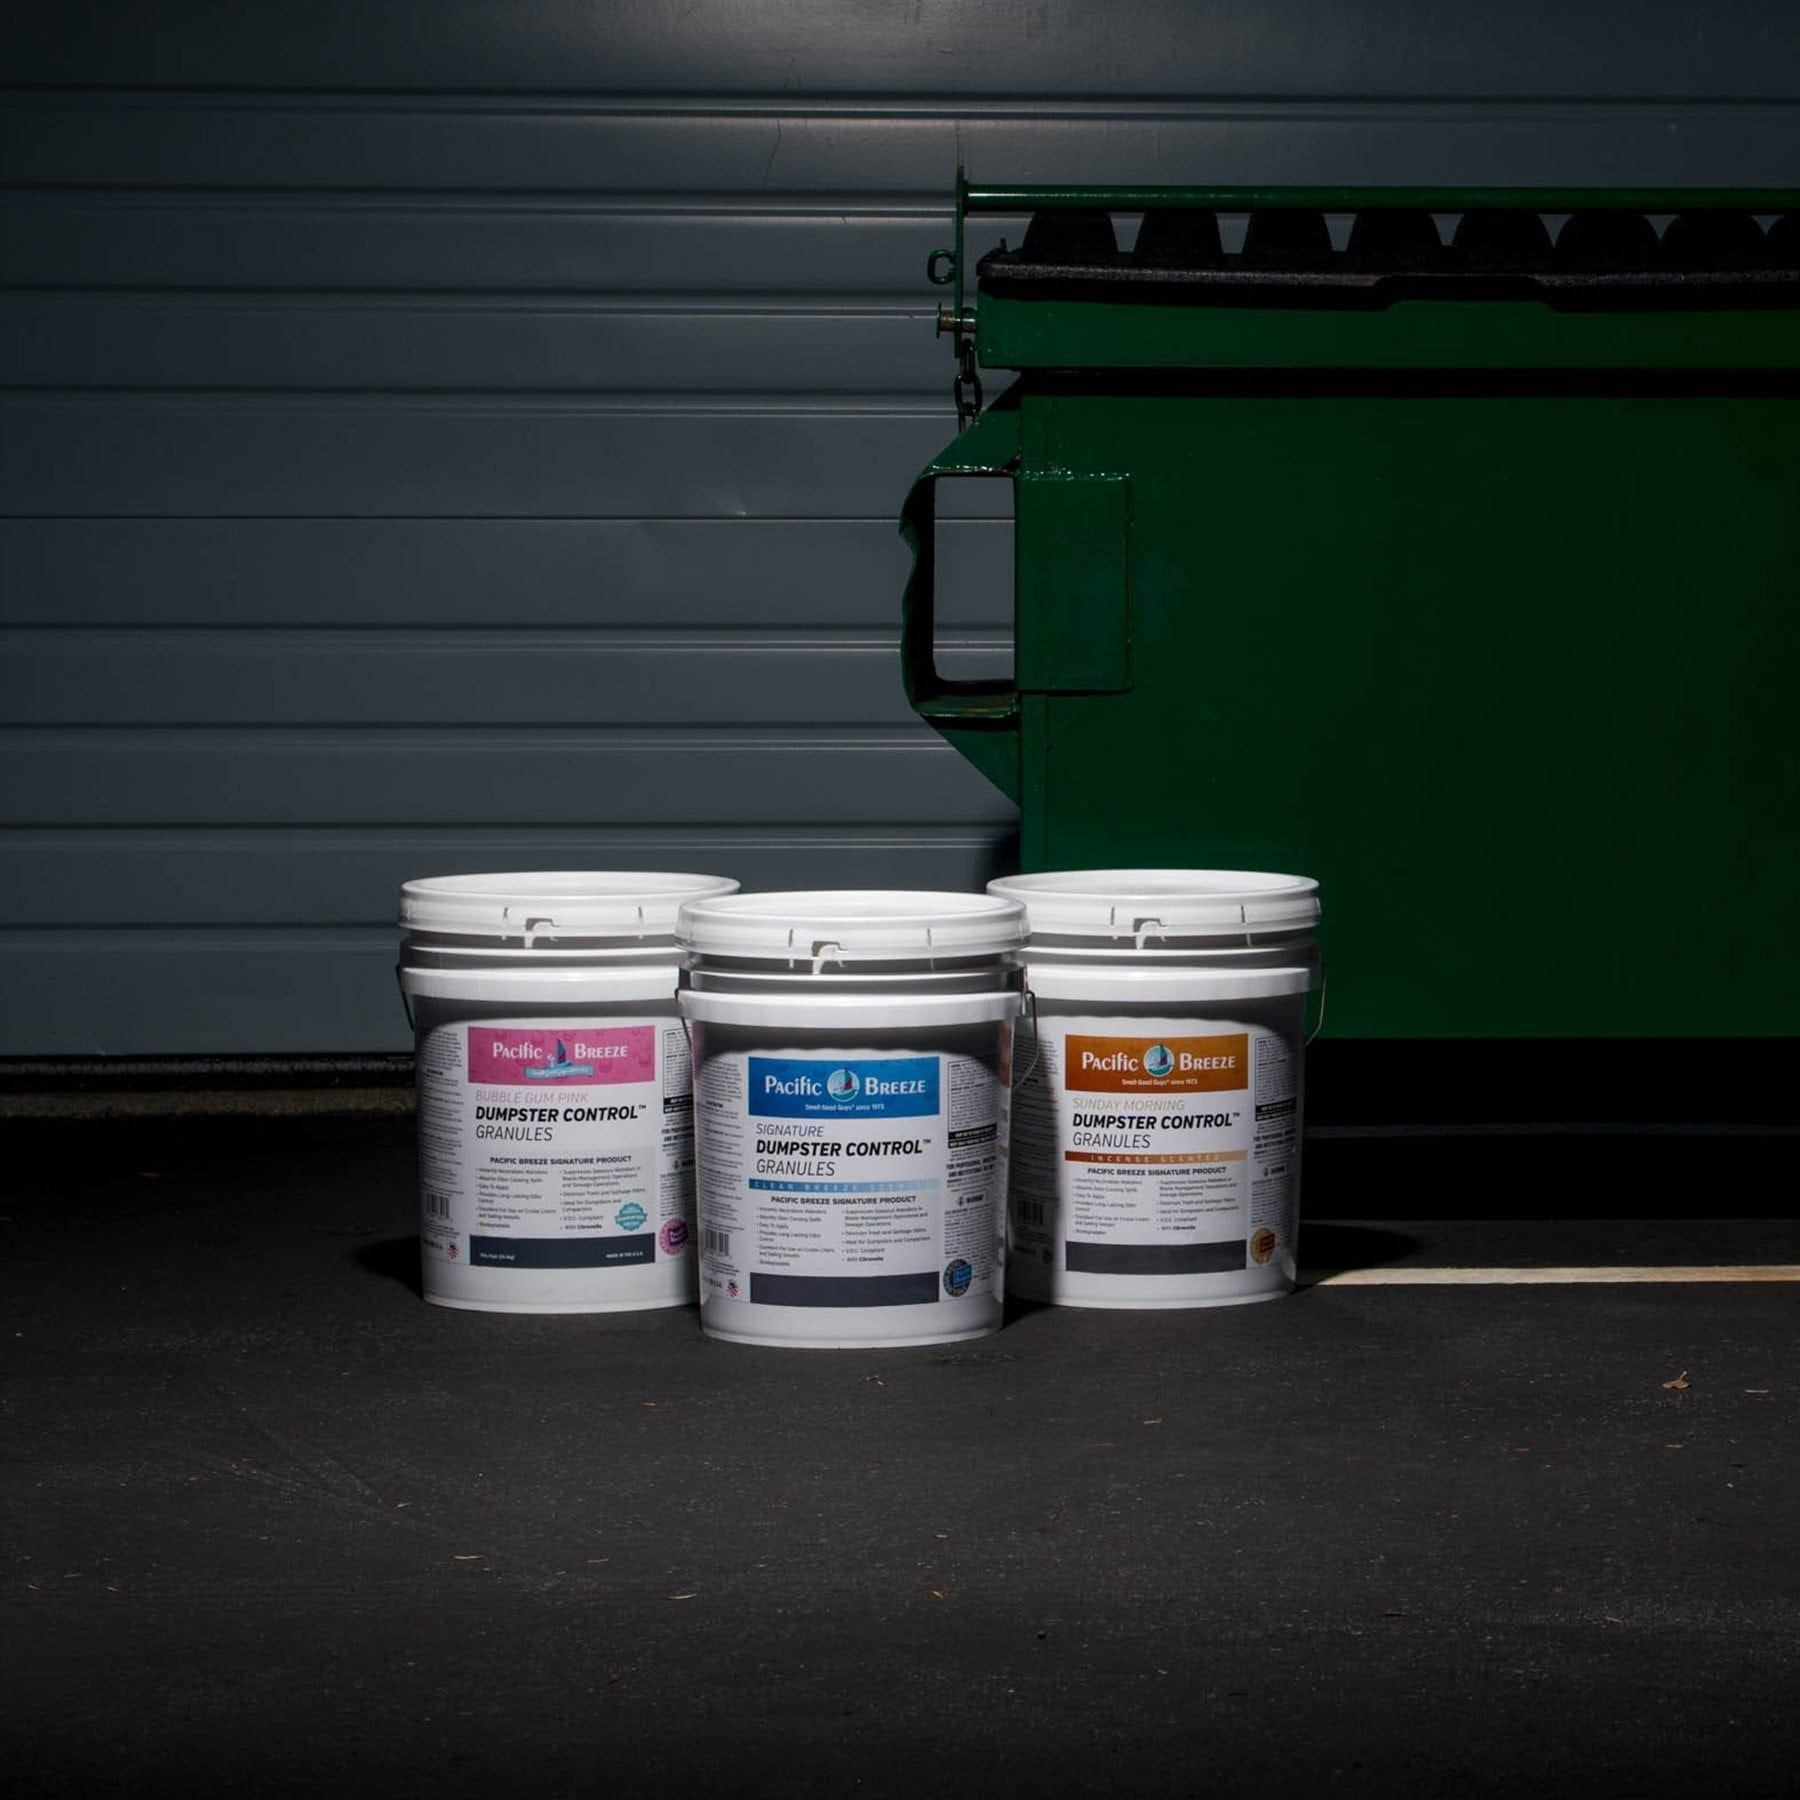 3 Fragrances of Dumpster Control Granules Buckets